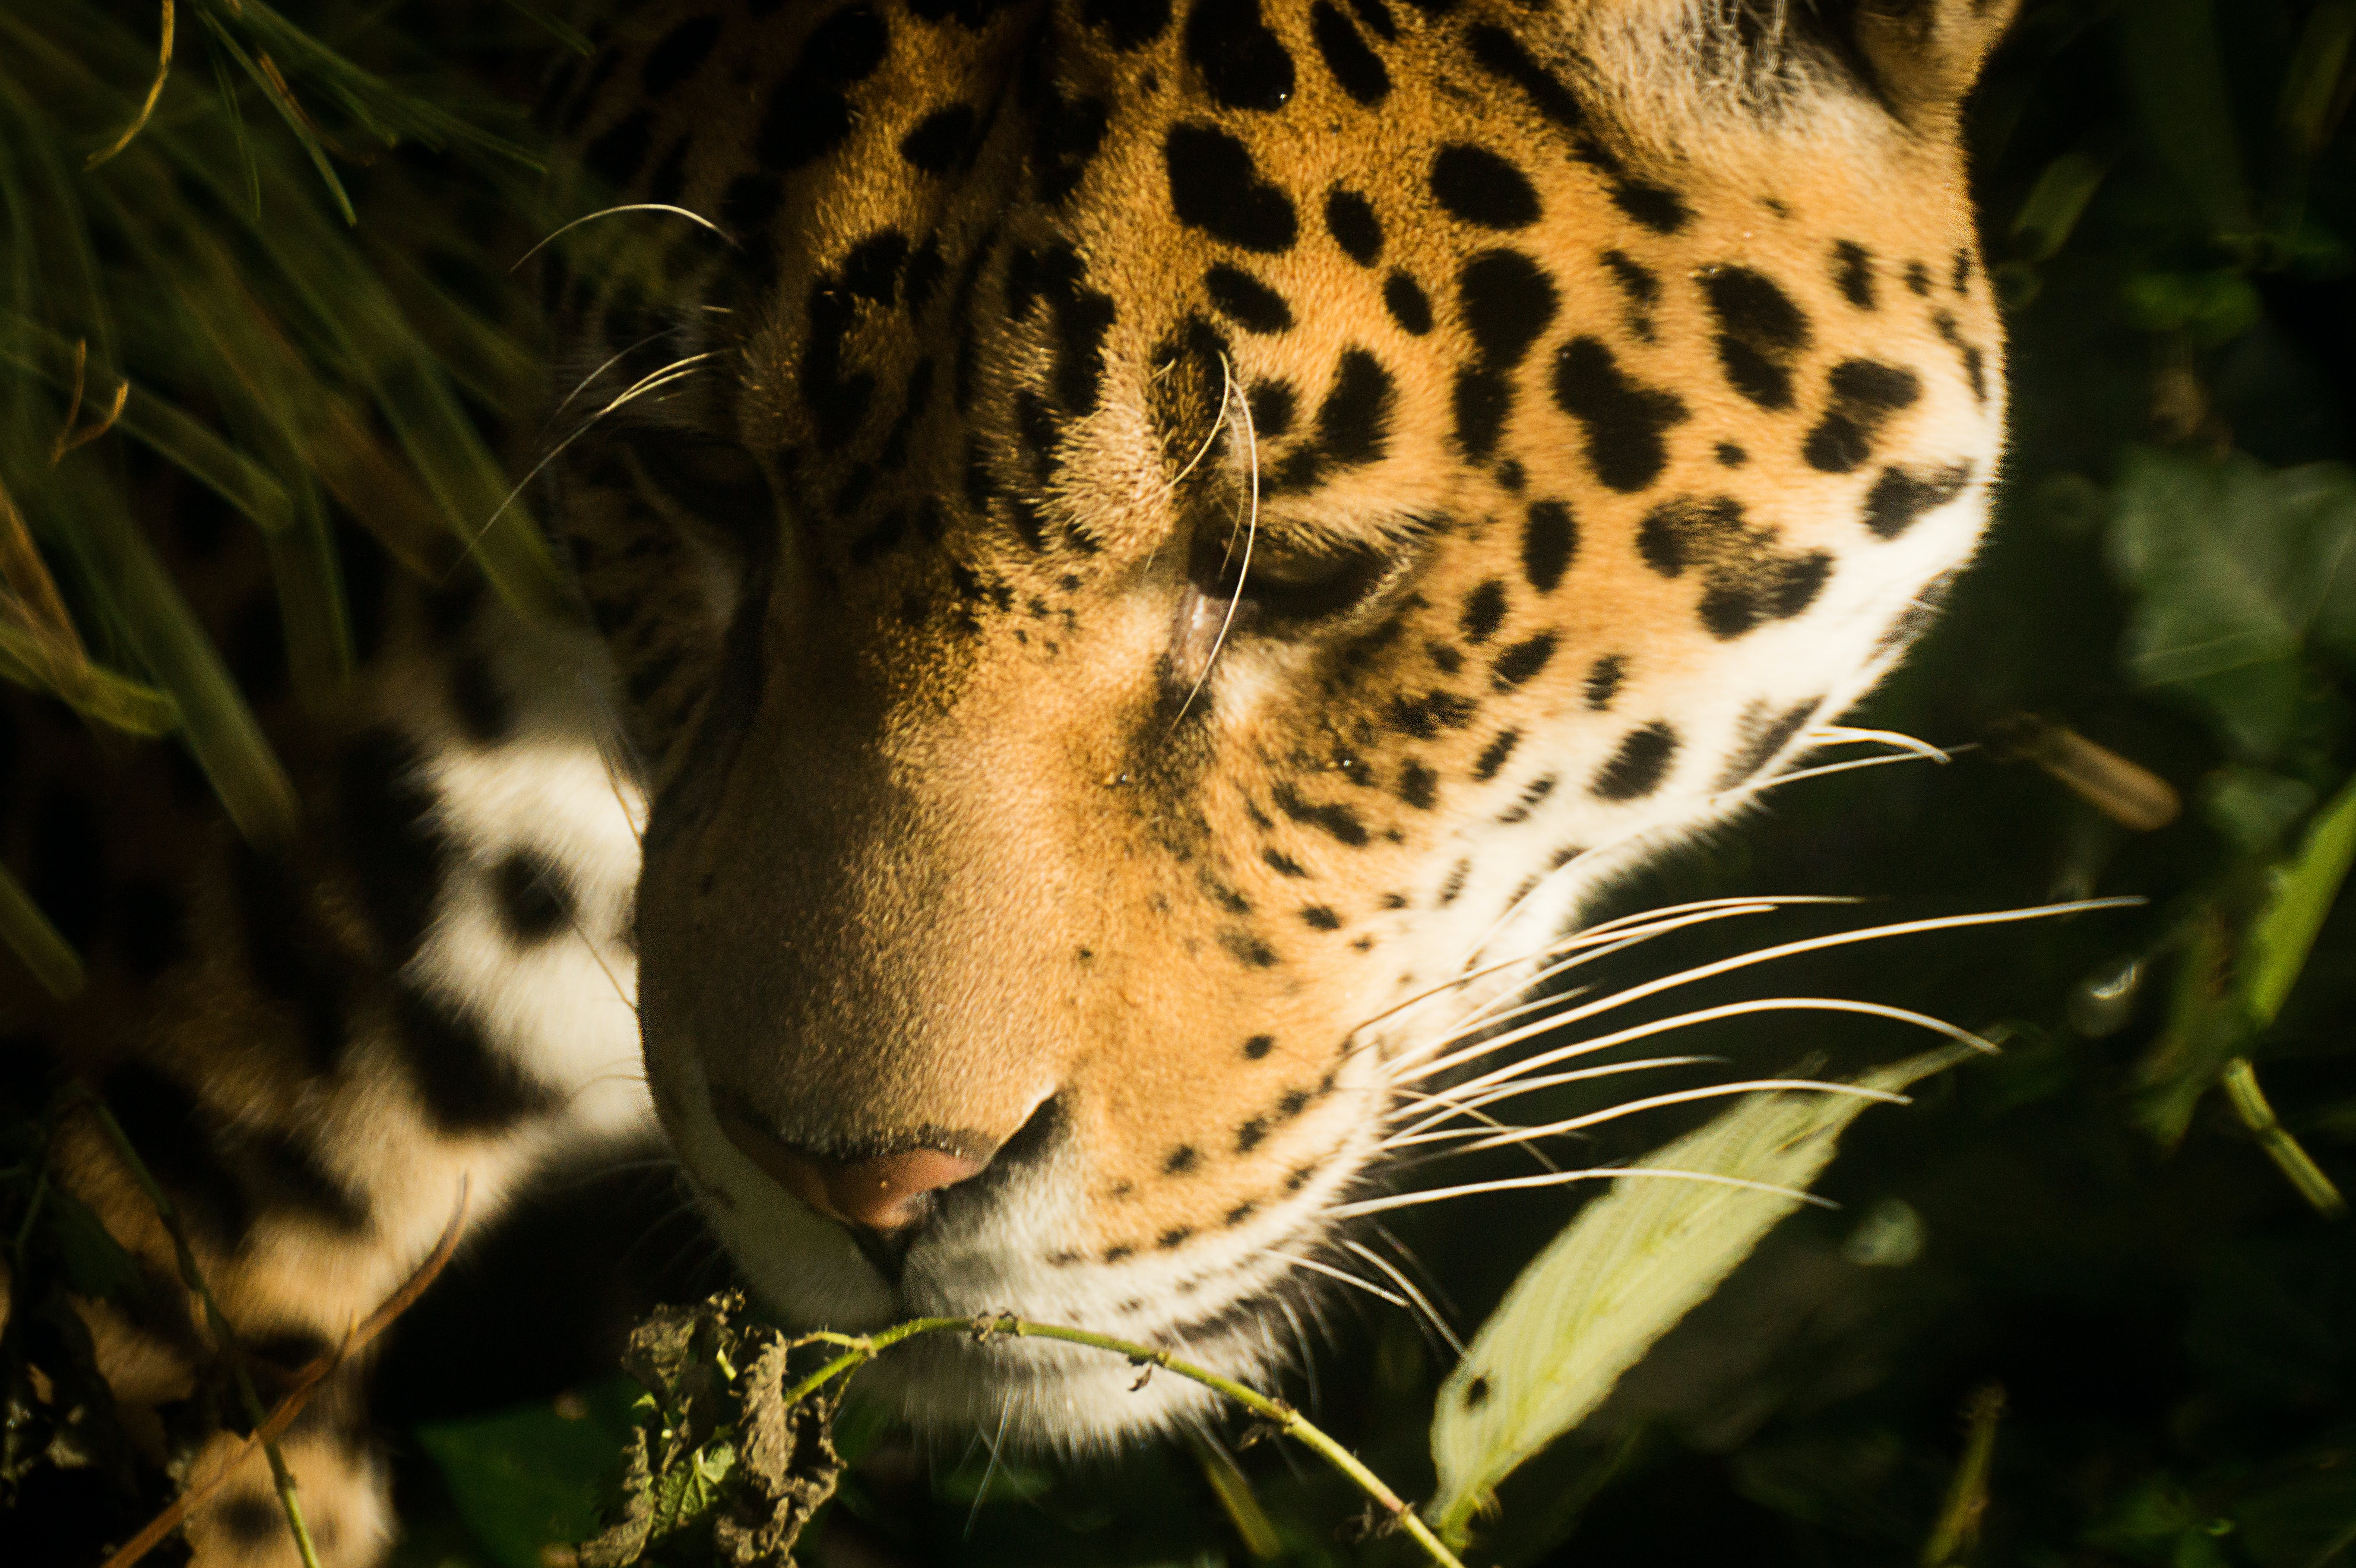 Close-up Photography of Yellow and Black Leopard